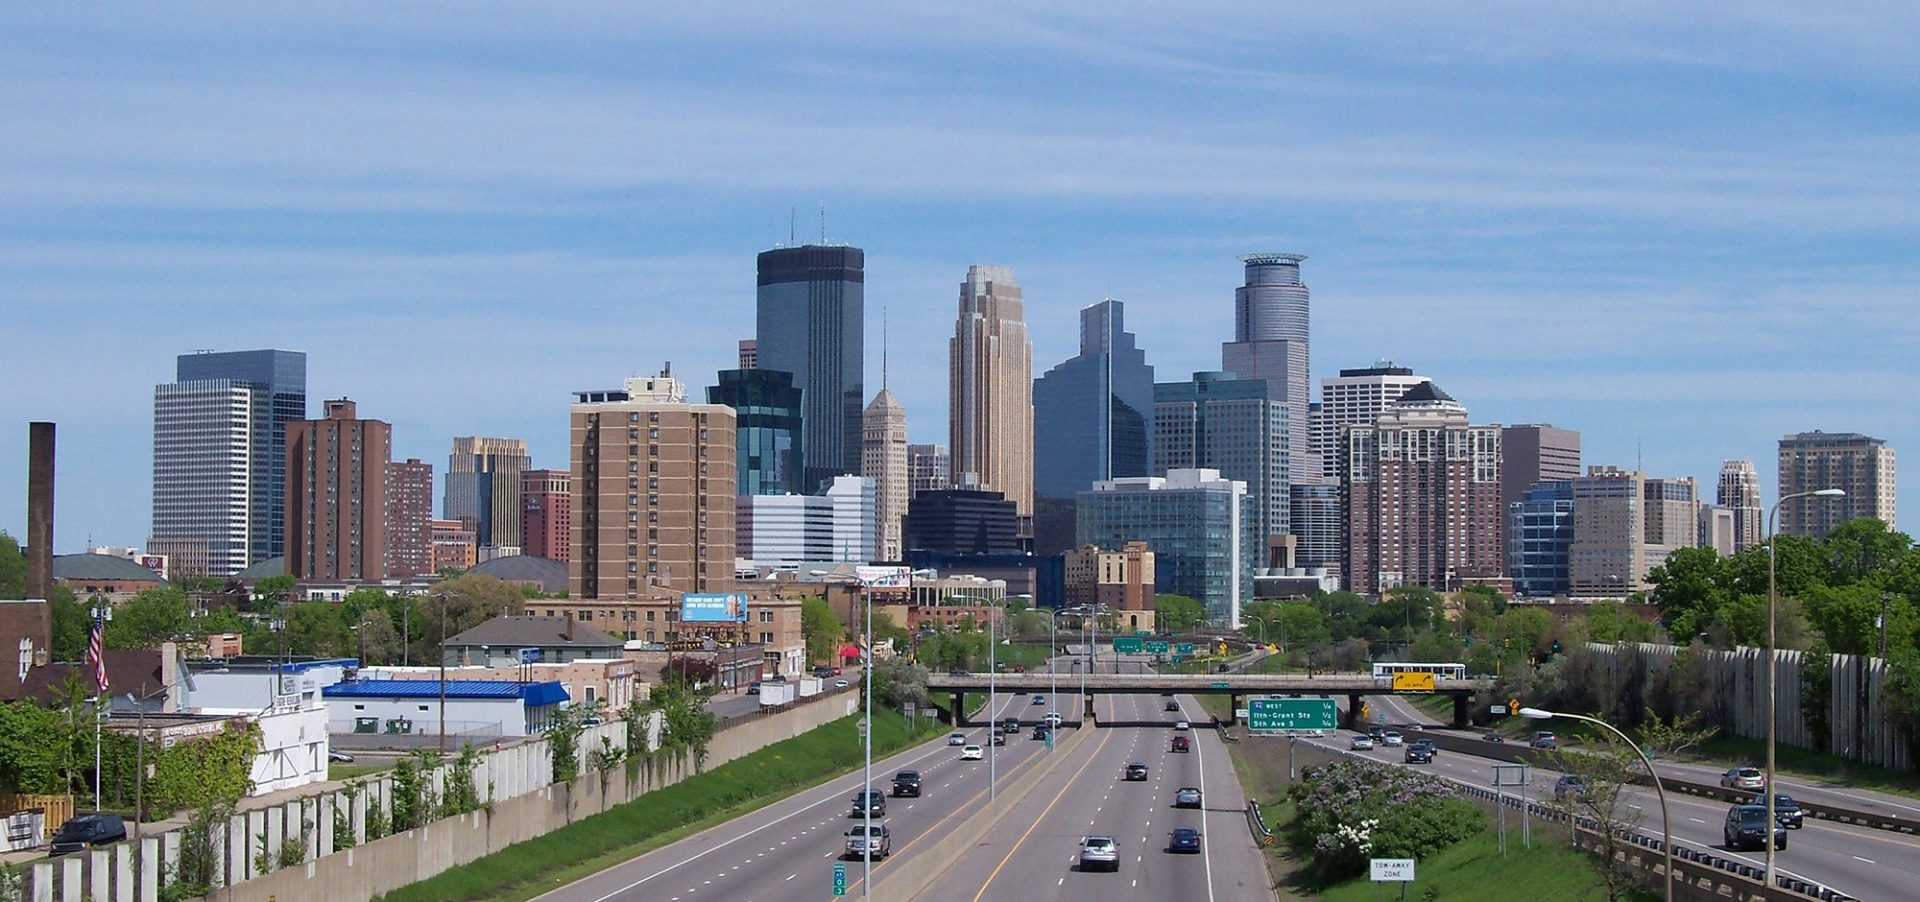 Data Center in Minneapolis? You Betcha! Here's Why